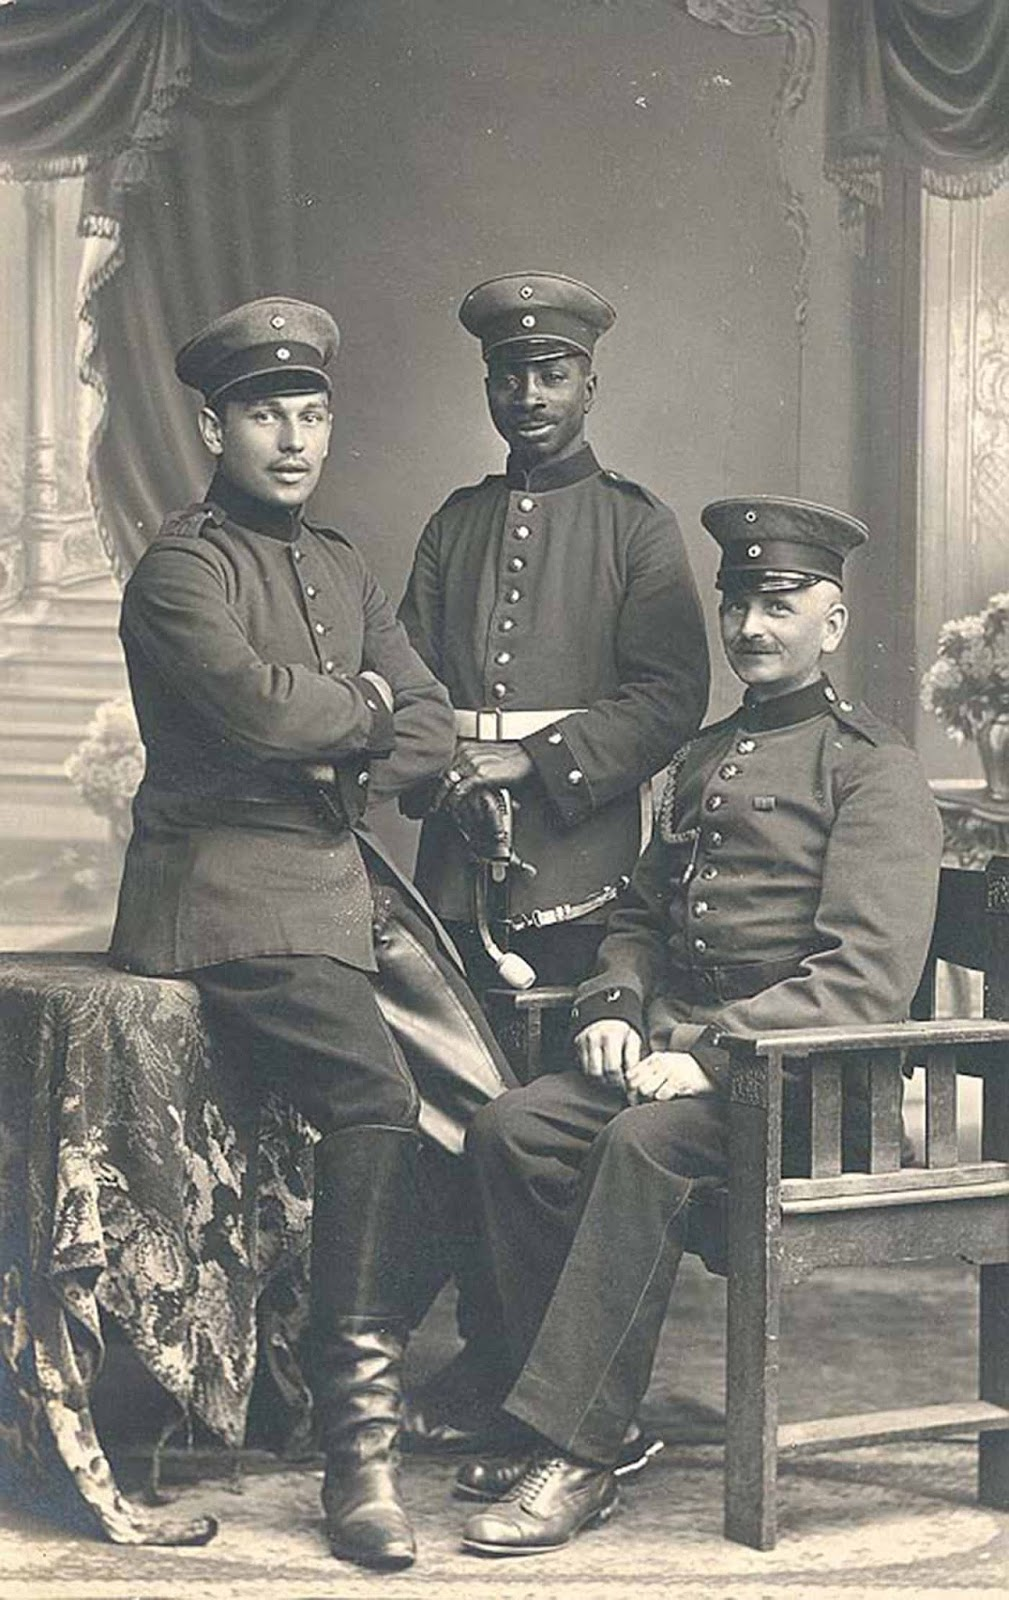 Josef Mambo, born in German East Africa in 1885, moved to Germany in 1897 and twice wounded in East Prussia and Verdun, 1915.